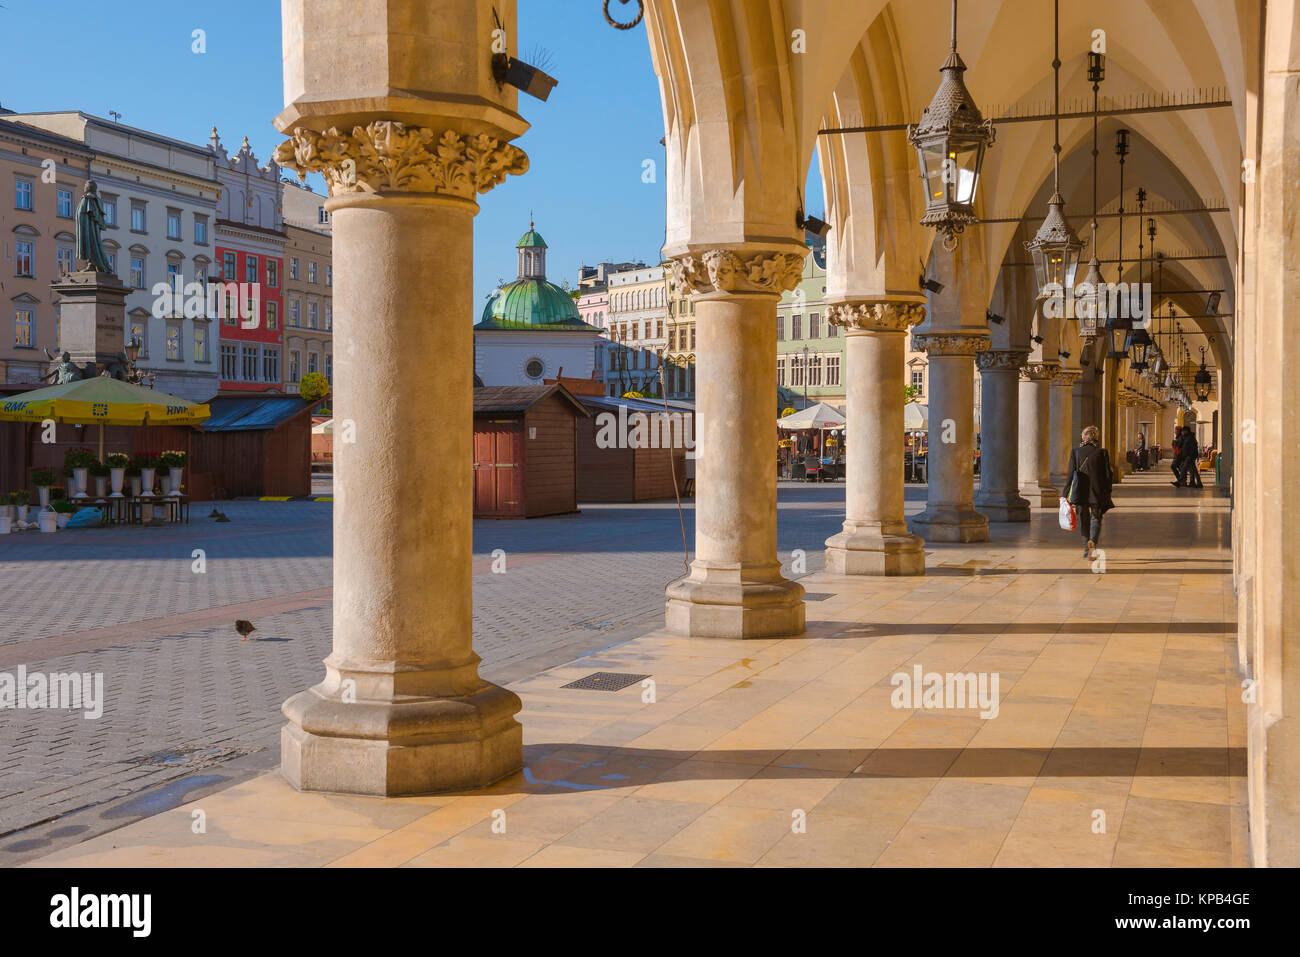 Arcade Poland, view of a colonnade on the east side of the Renaissance era Cloth Hall in the Market Square in Krakow - Stock Image